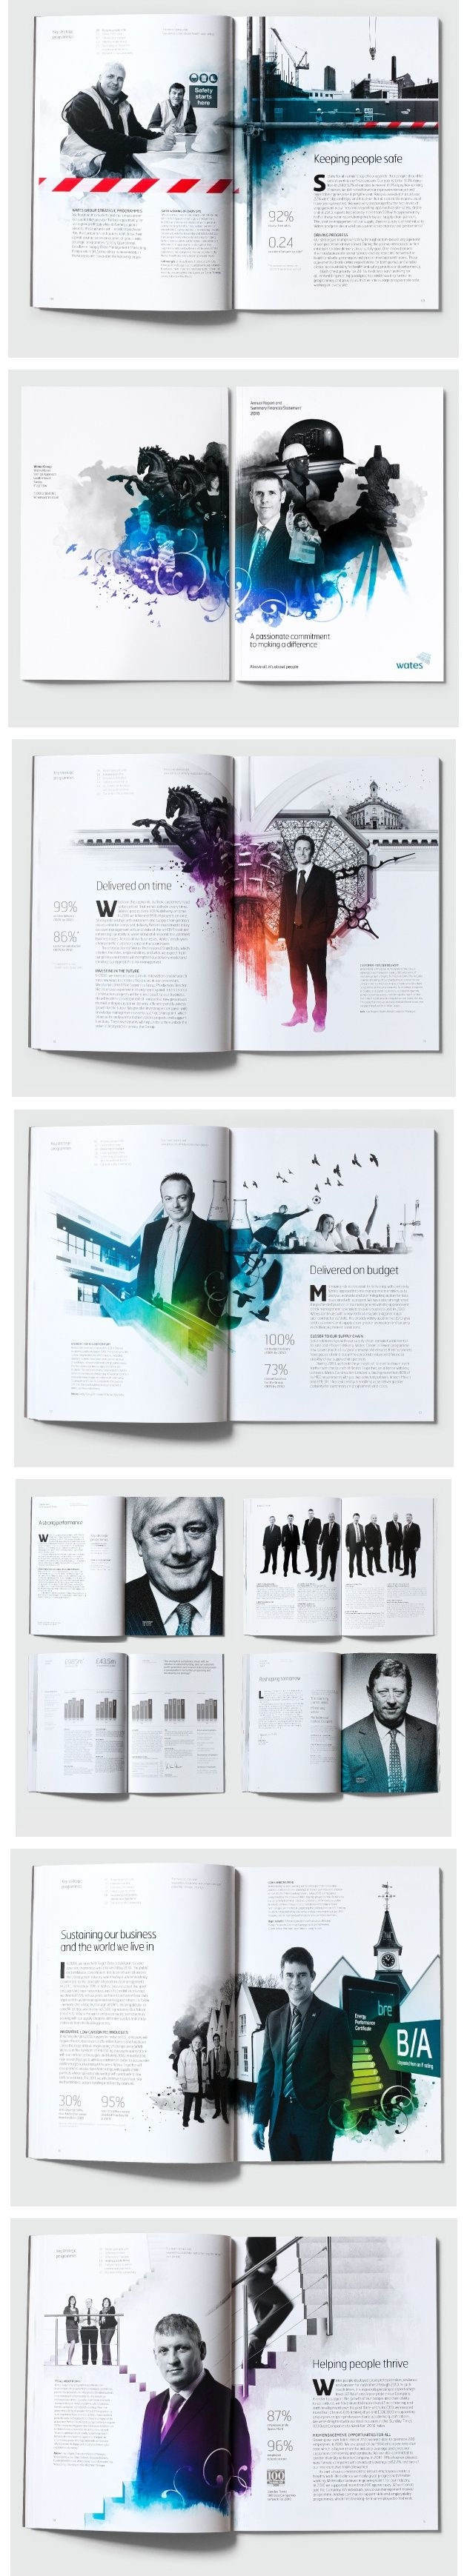 Get Inspired Today! Introducing Moire Studios  >>> Feel Free to Follow us @moirestudiosjkt to see more amazing pins like this. Or visit our website www.moirestudiosjkt.com to know more about us. <<< #booklet #brochure #editorial #graphicDesign: